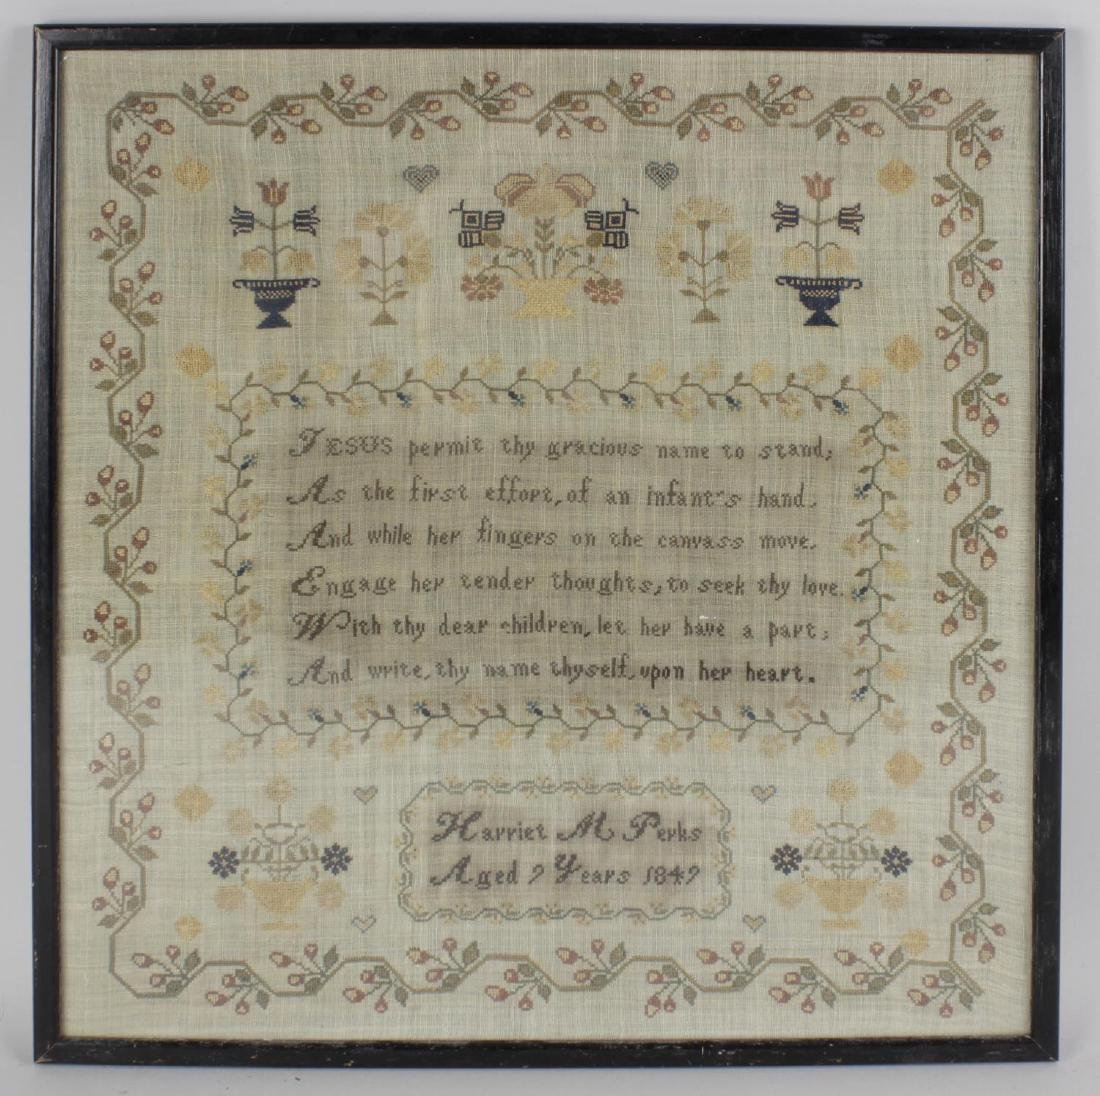 A mid 19th century needlework sampler, worked by